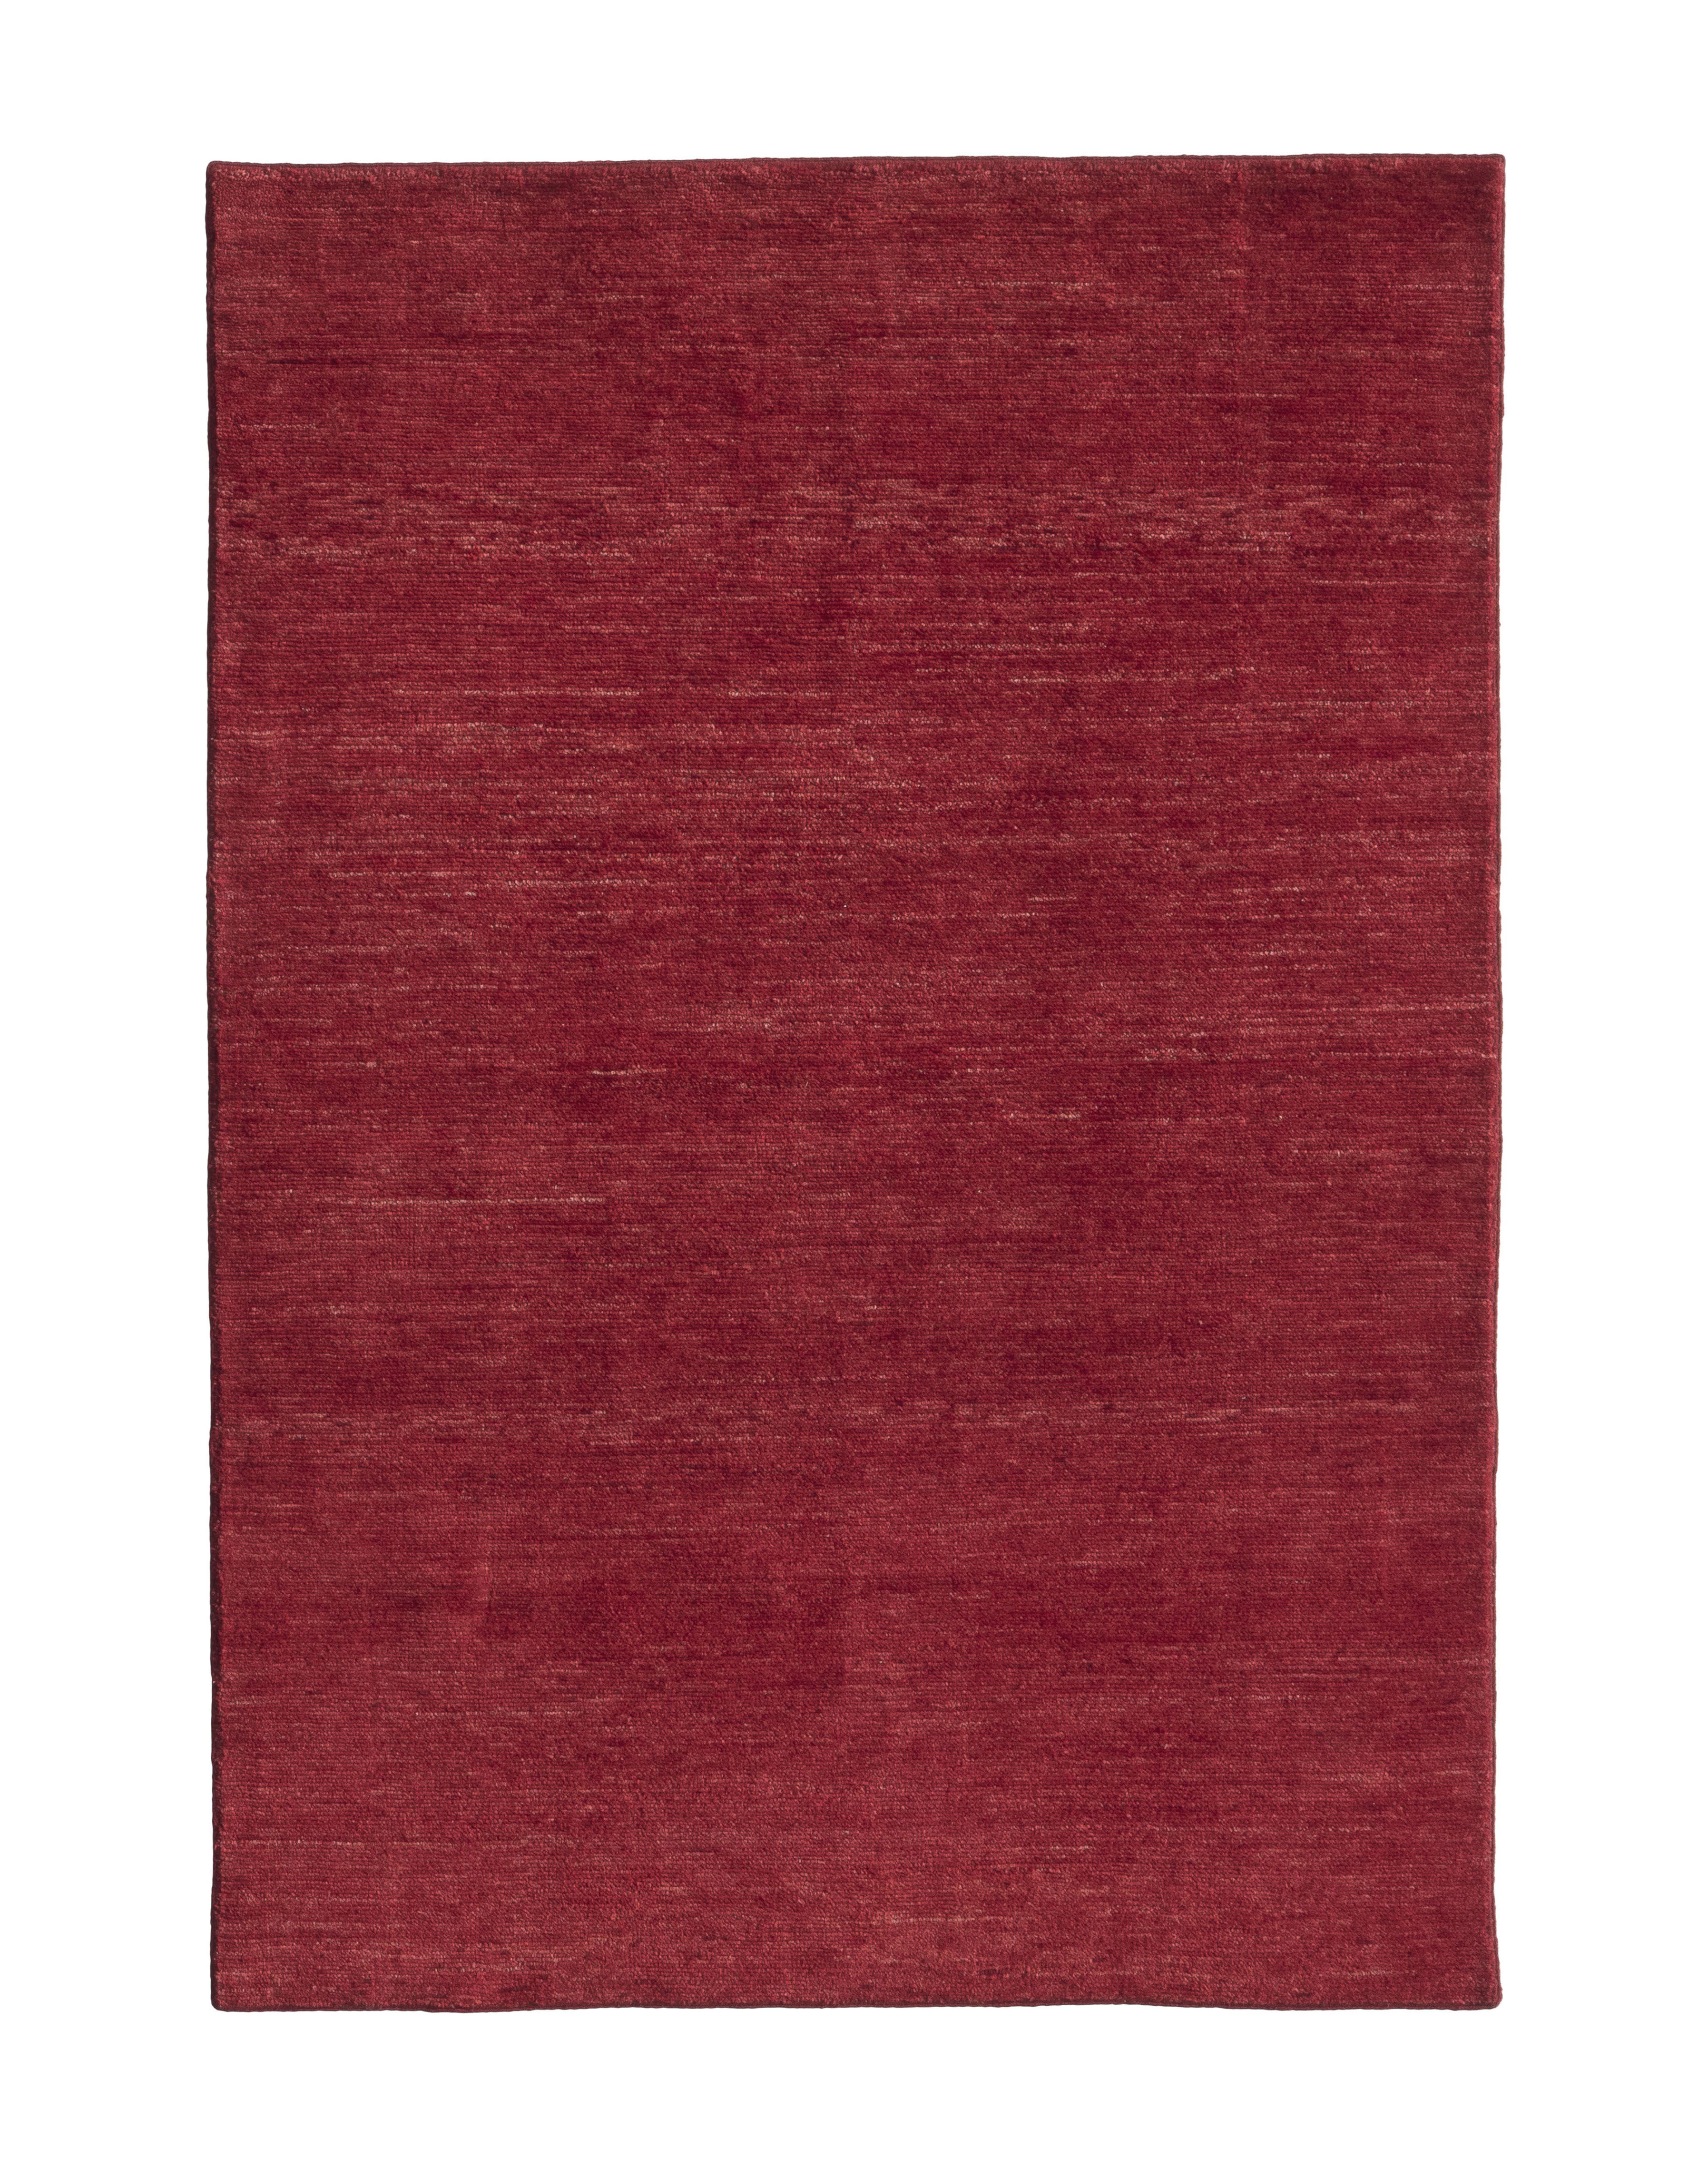 Decoration - Rugs - Persian Colors Rug - / 170 x 240 cm by Nanimarquina - Scarlet Red - Wool